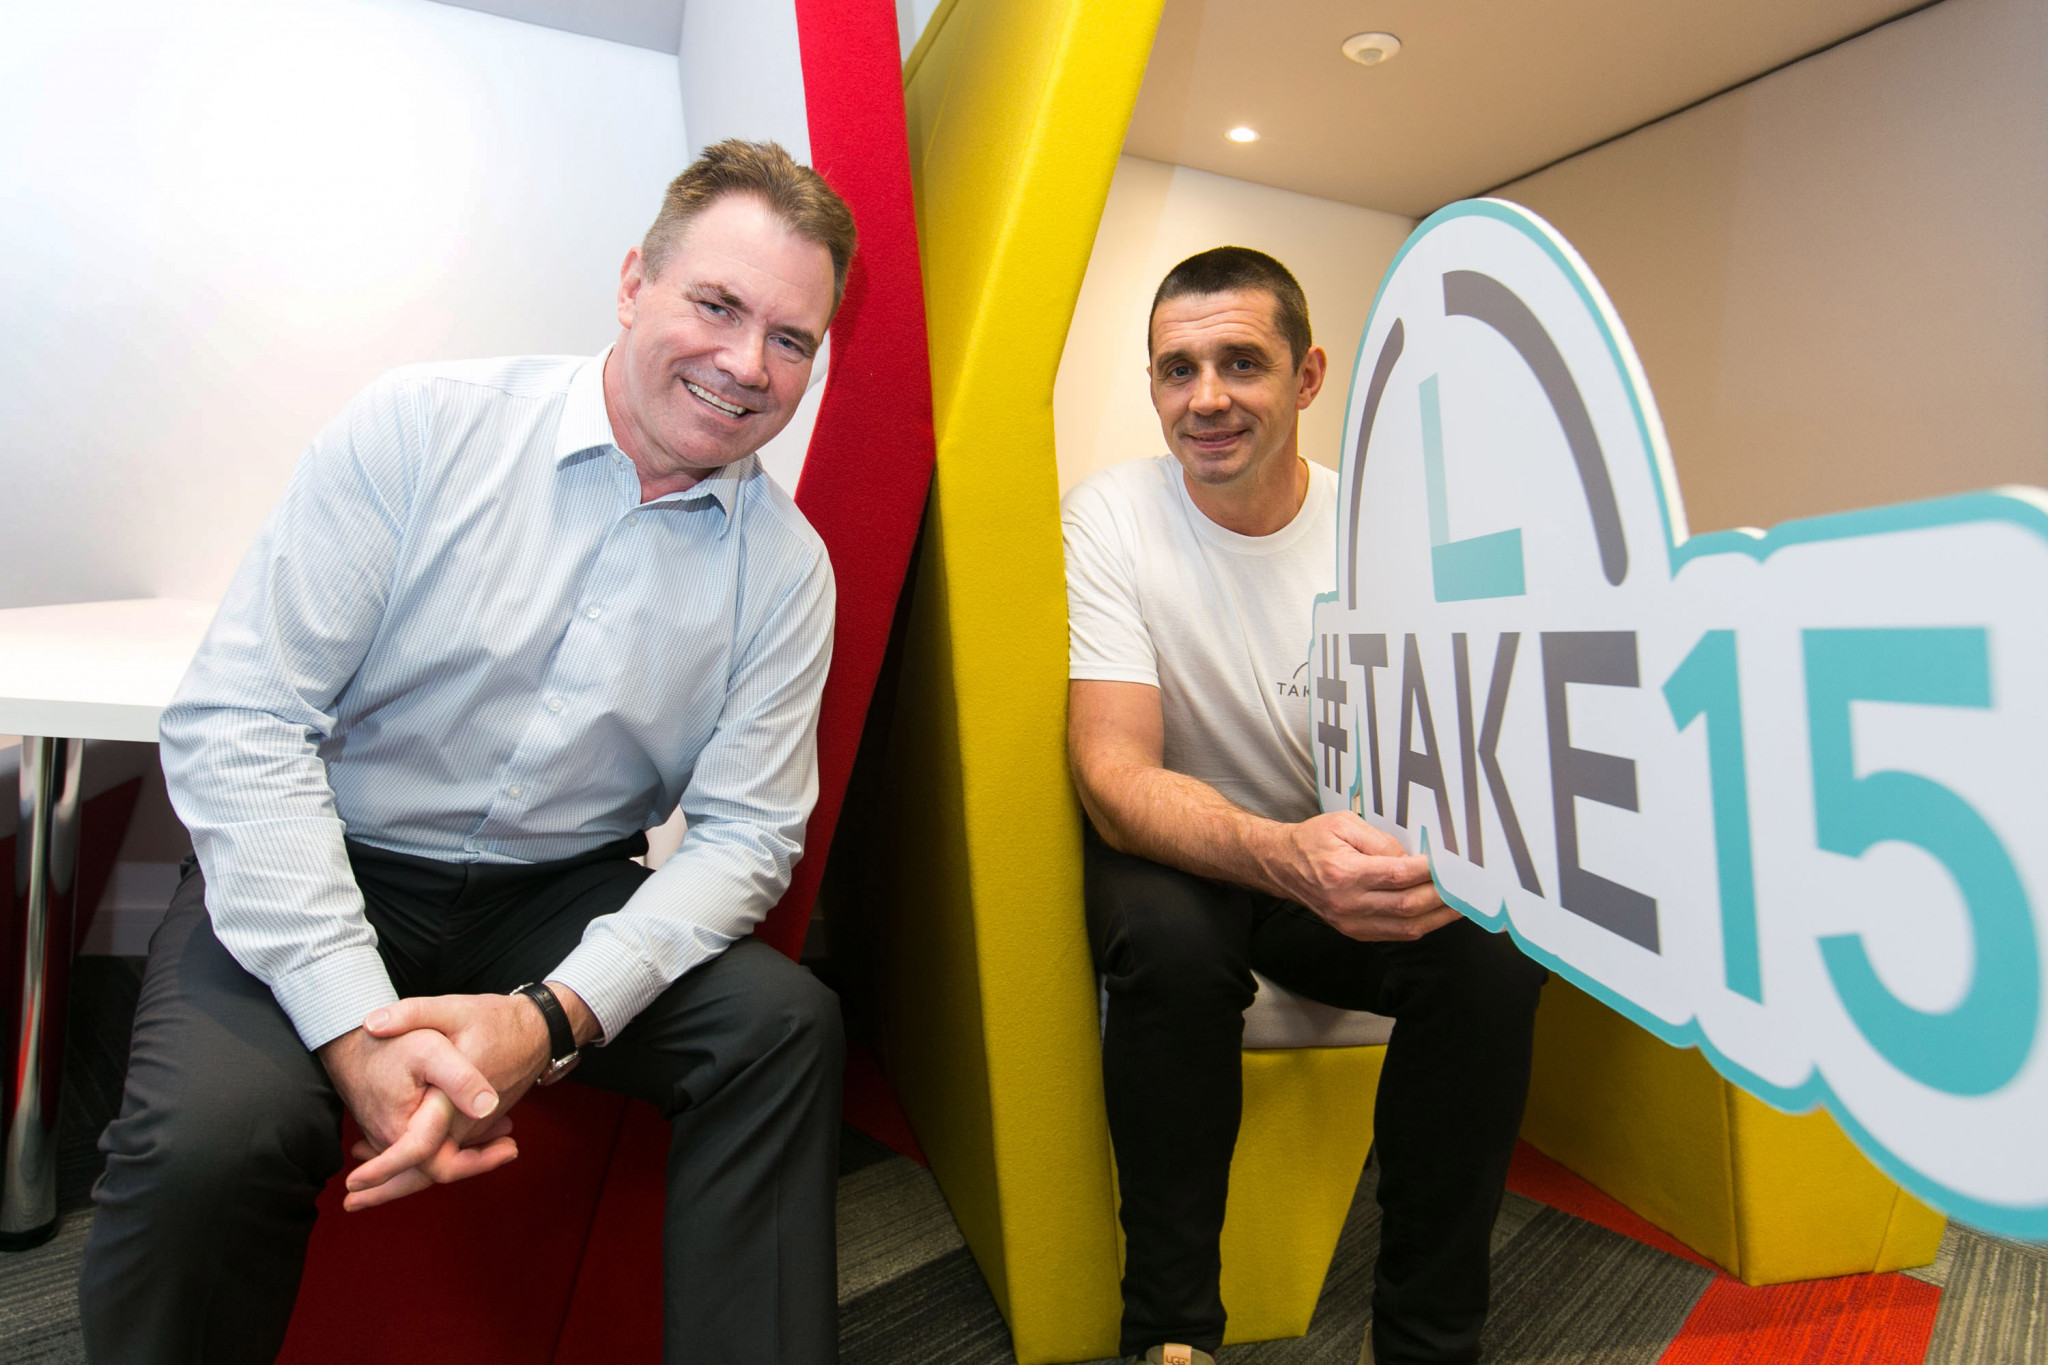 Aramark Supports Mental Health with TAKE15 Campaign